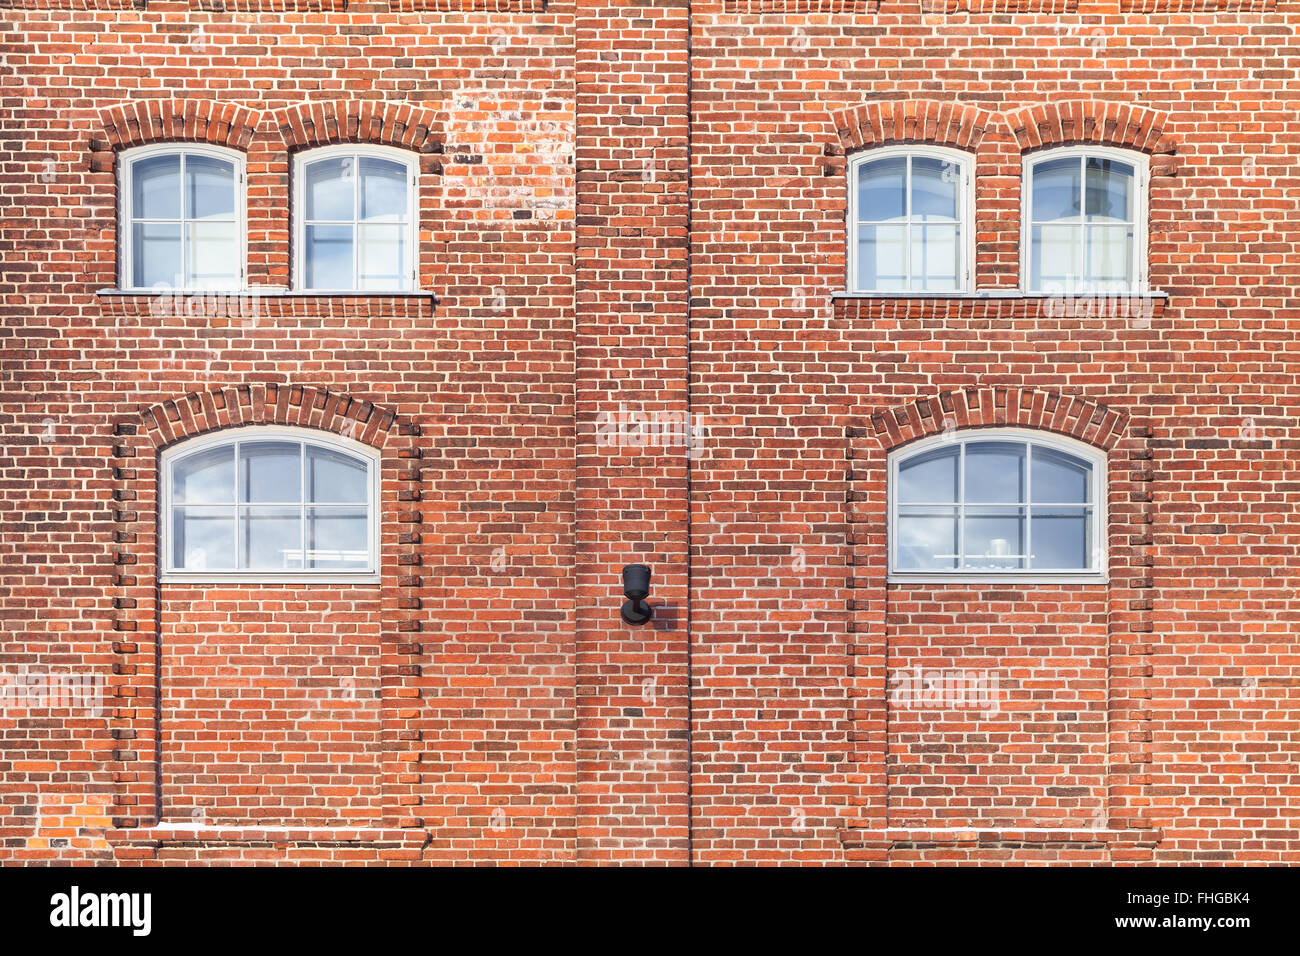 Red Brick Wall With Small Windows Living House Facade